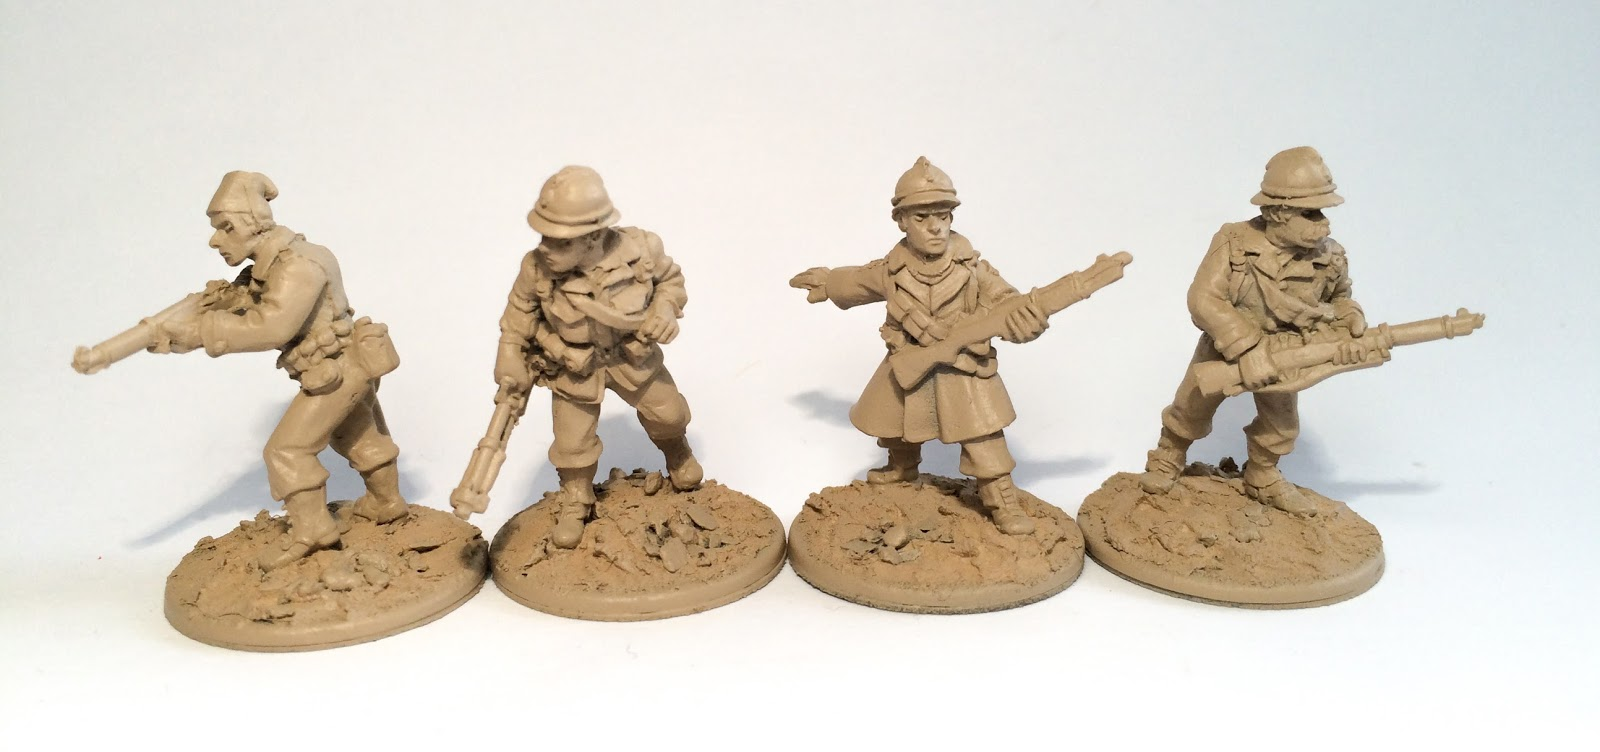 Painting miniatures color master primer - Spray Your Miniatures With A Coloured Primer Spray I Chose A Spray Colour That Will Be The Main Khaki Uniform This Saves Time As You Prime The